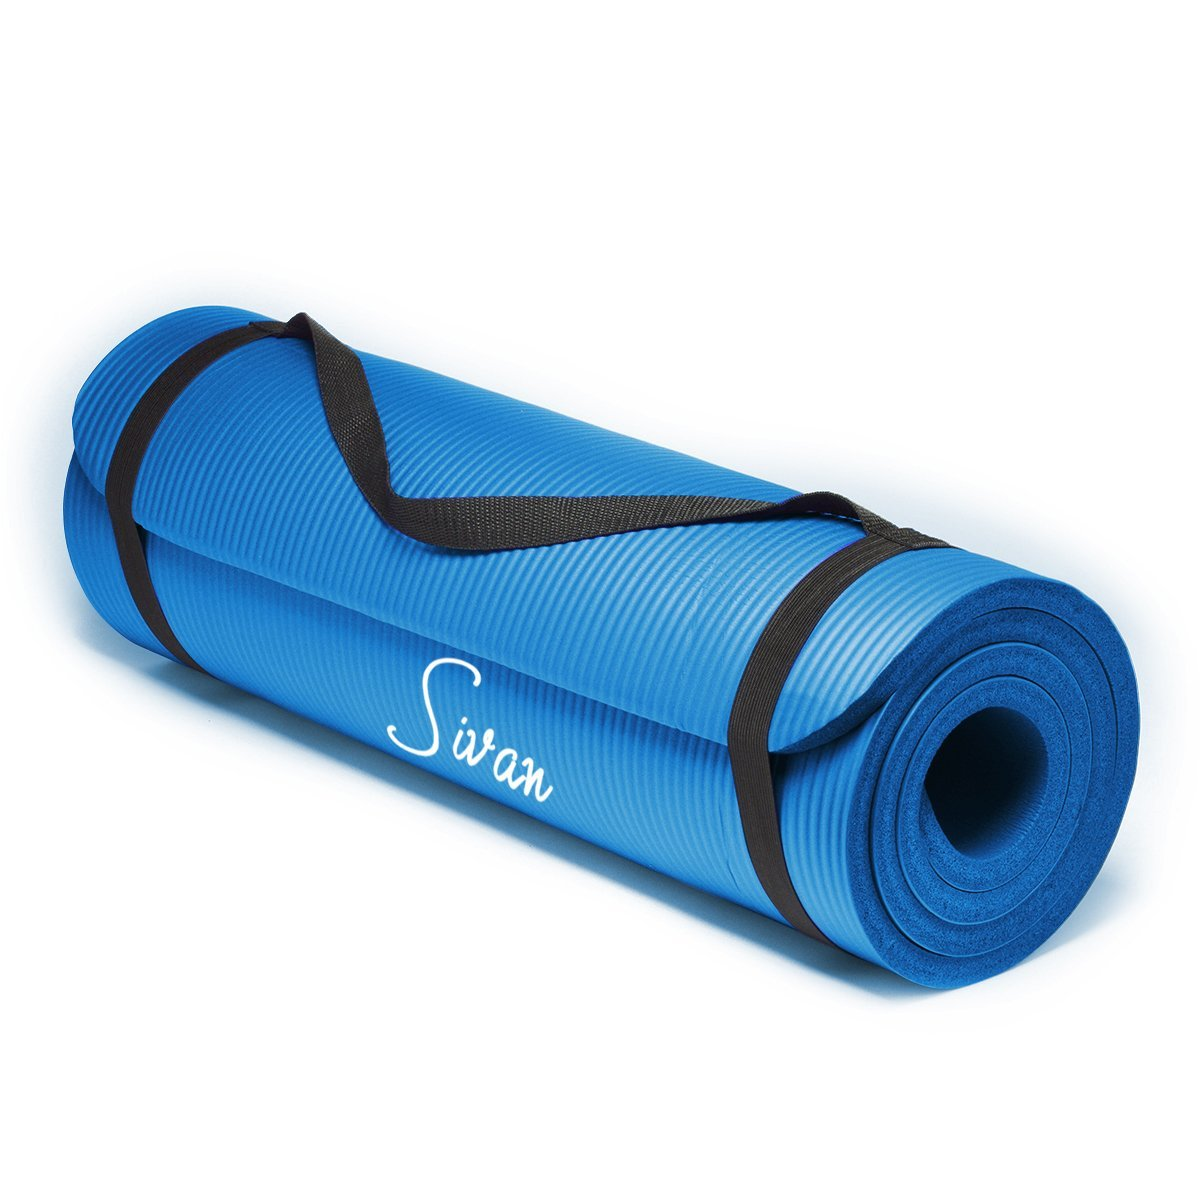 1/2 inch padded yoga mat for pilates